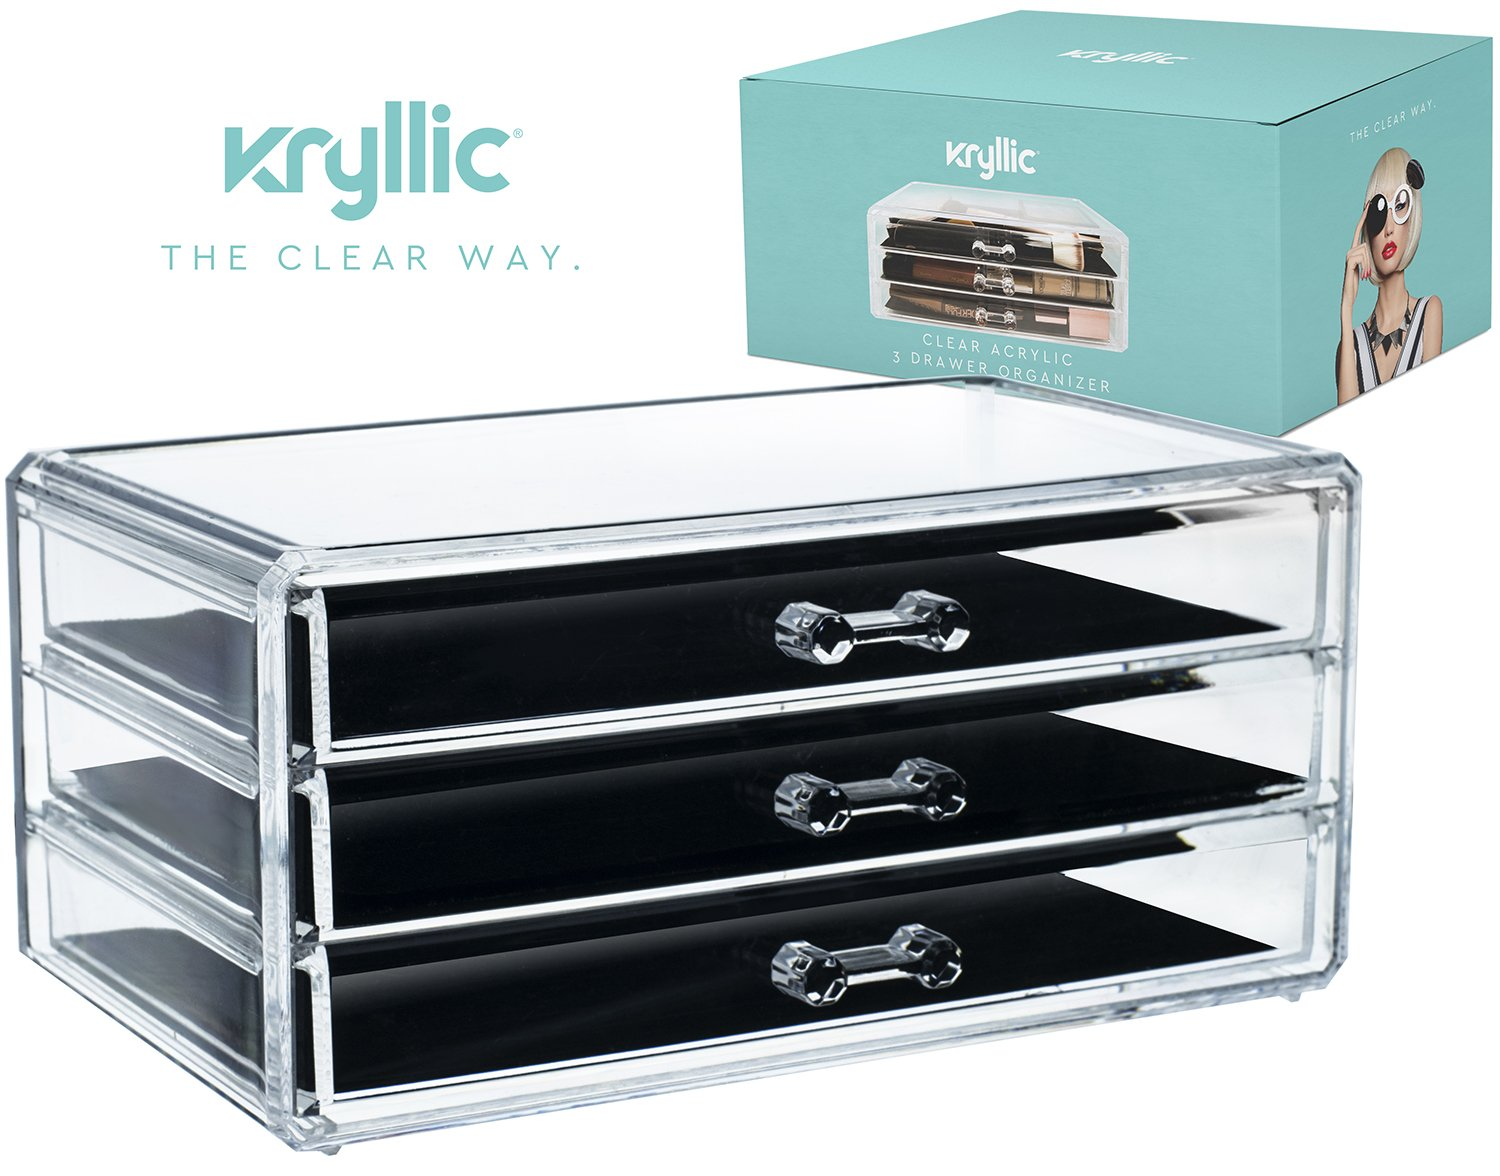 Acrylic Makeup Jewelry Cosmetic Organizer - Clear Acrylic Display Storage for Jewelry Makeup Pallets & all Bathroom Accessories keep your Vanity & Dresser Organized with set of 3 Drawers Kryllic